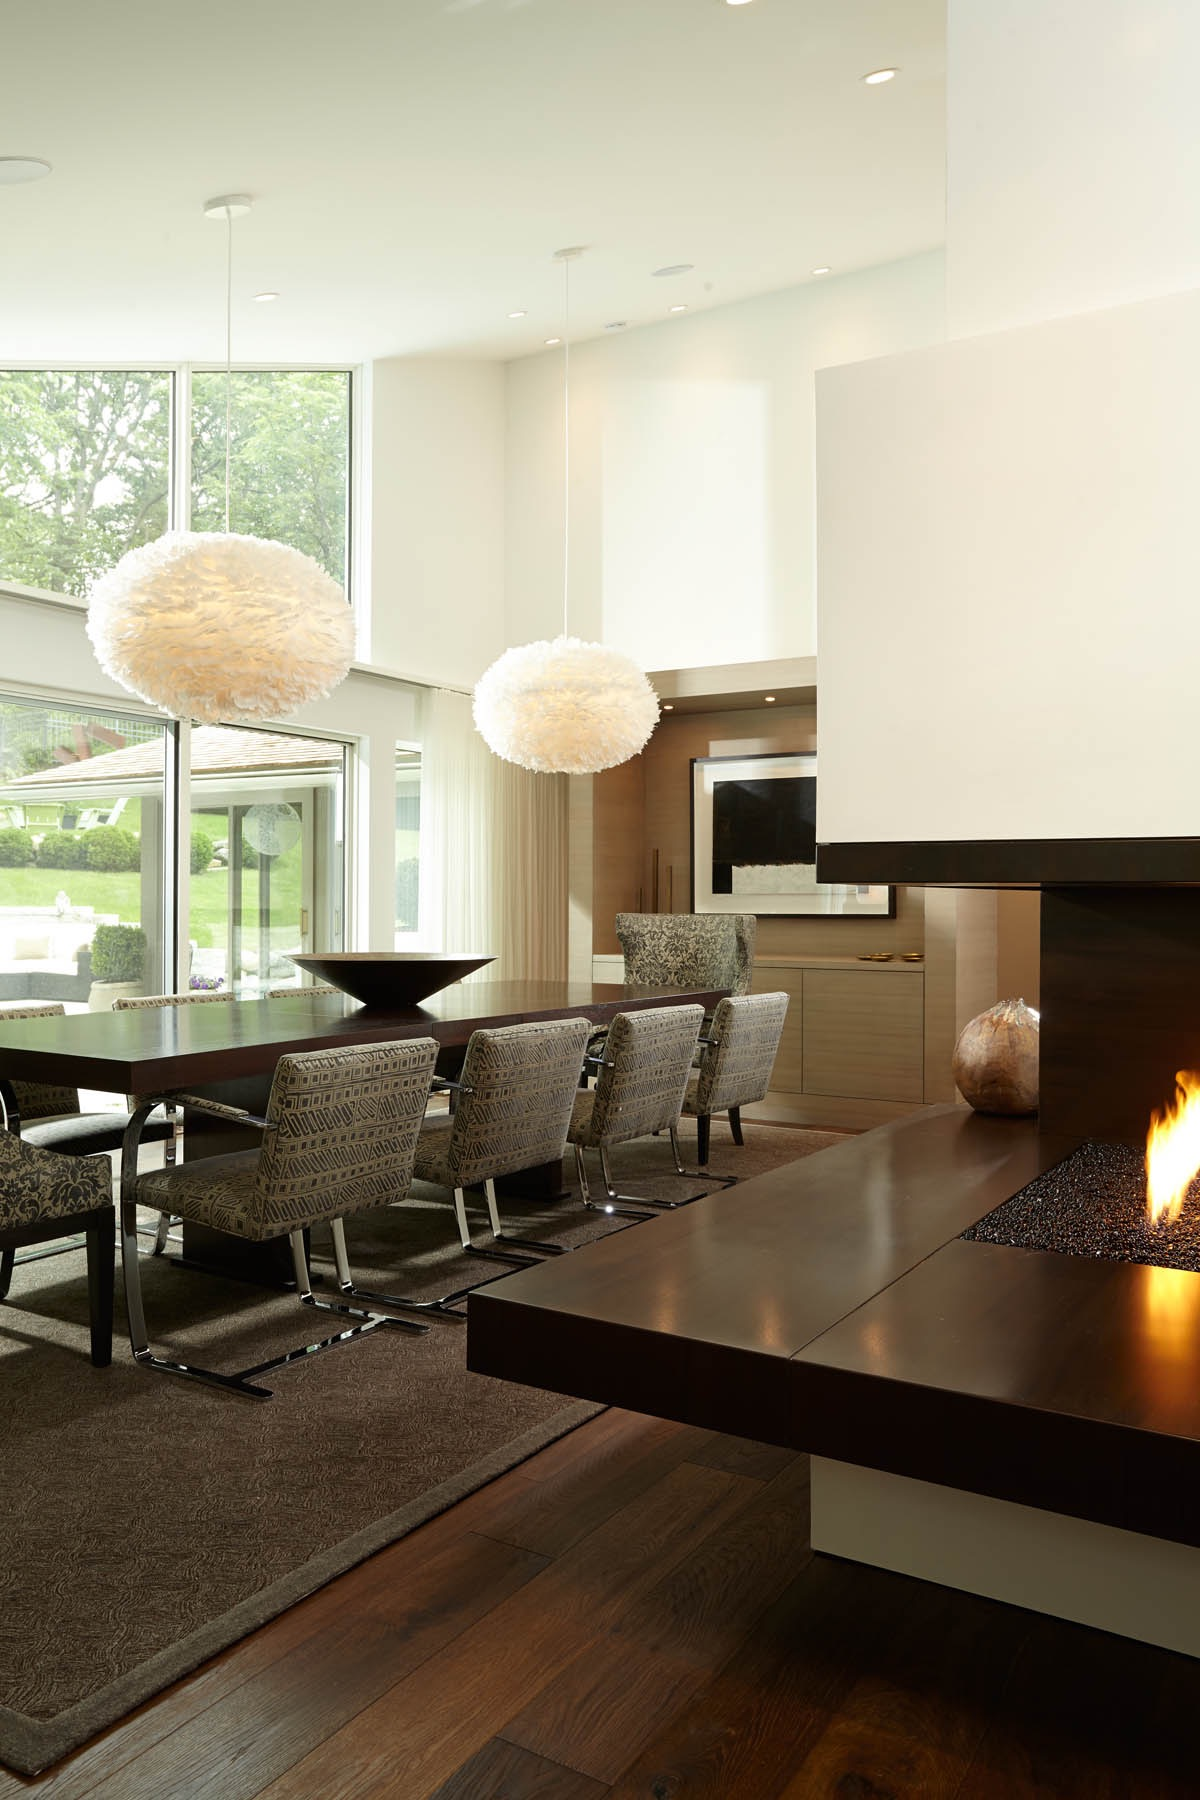 Modern Dining Room With Contemporary Fireplace (Image 16 of 30)